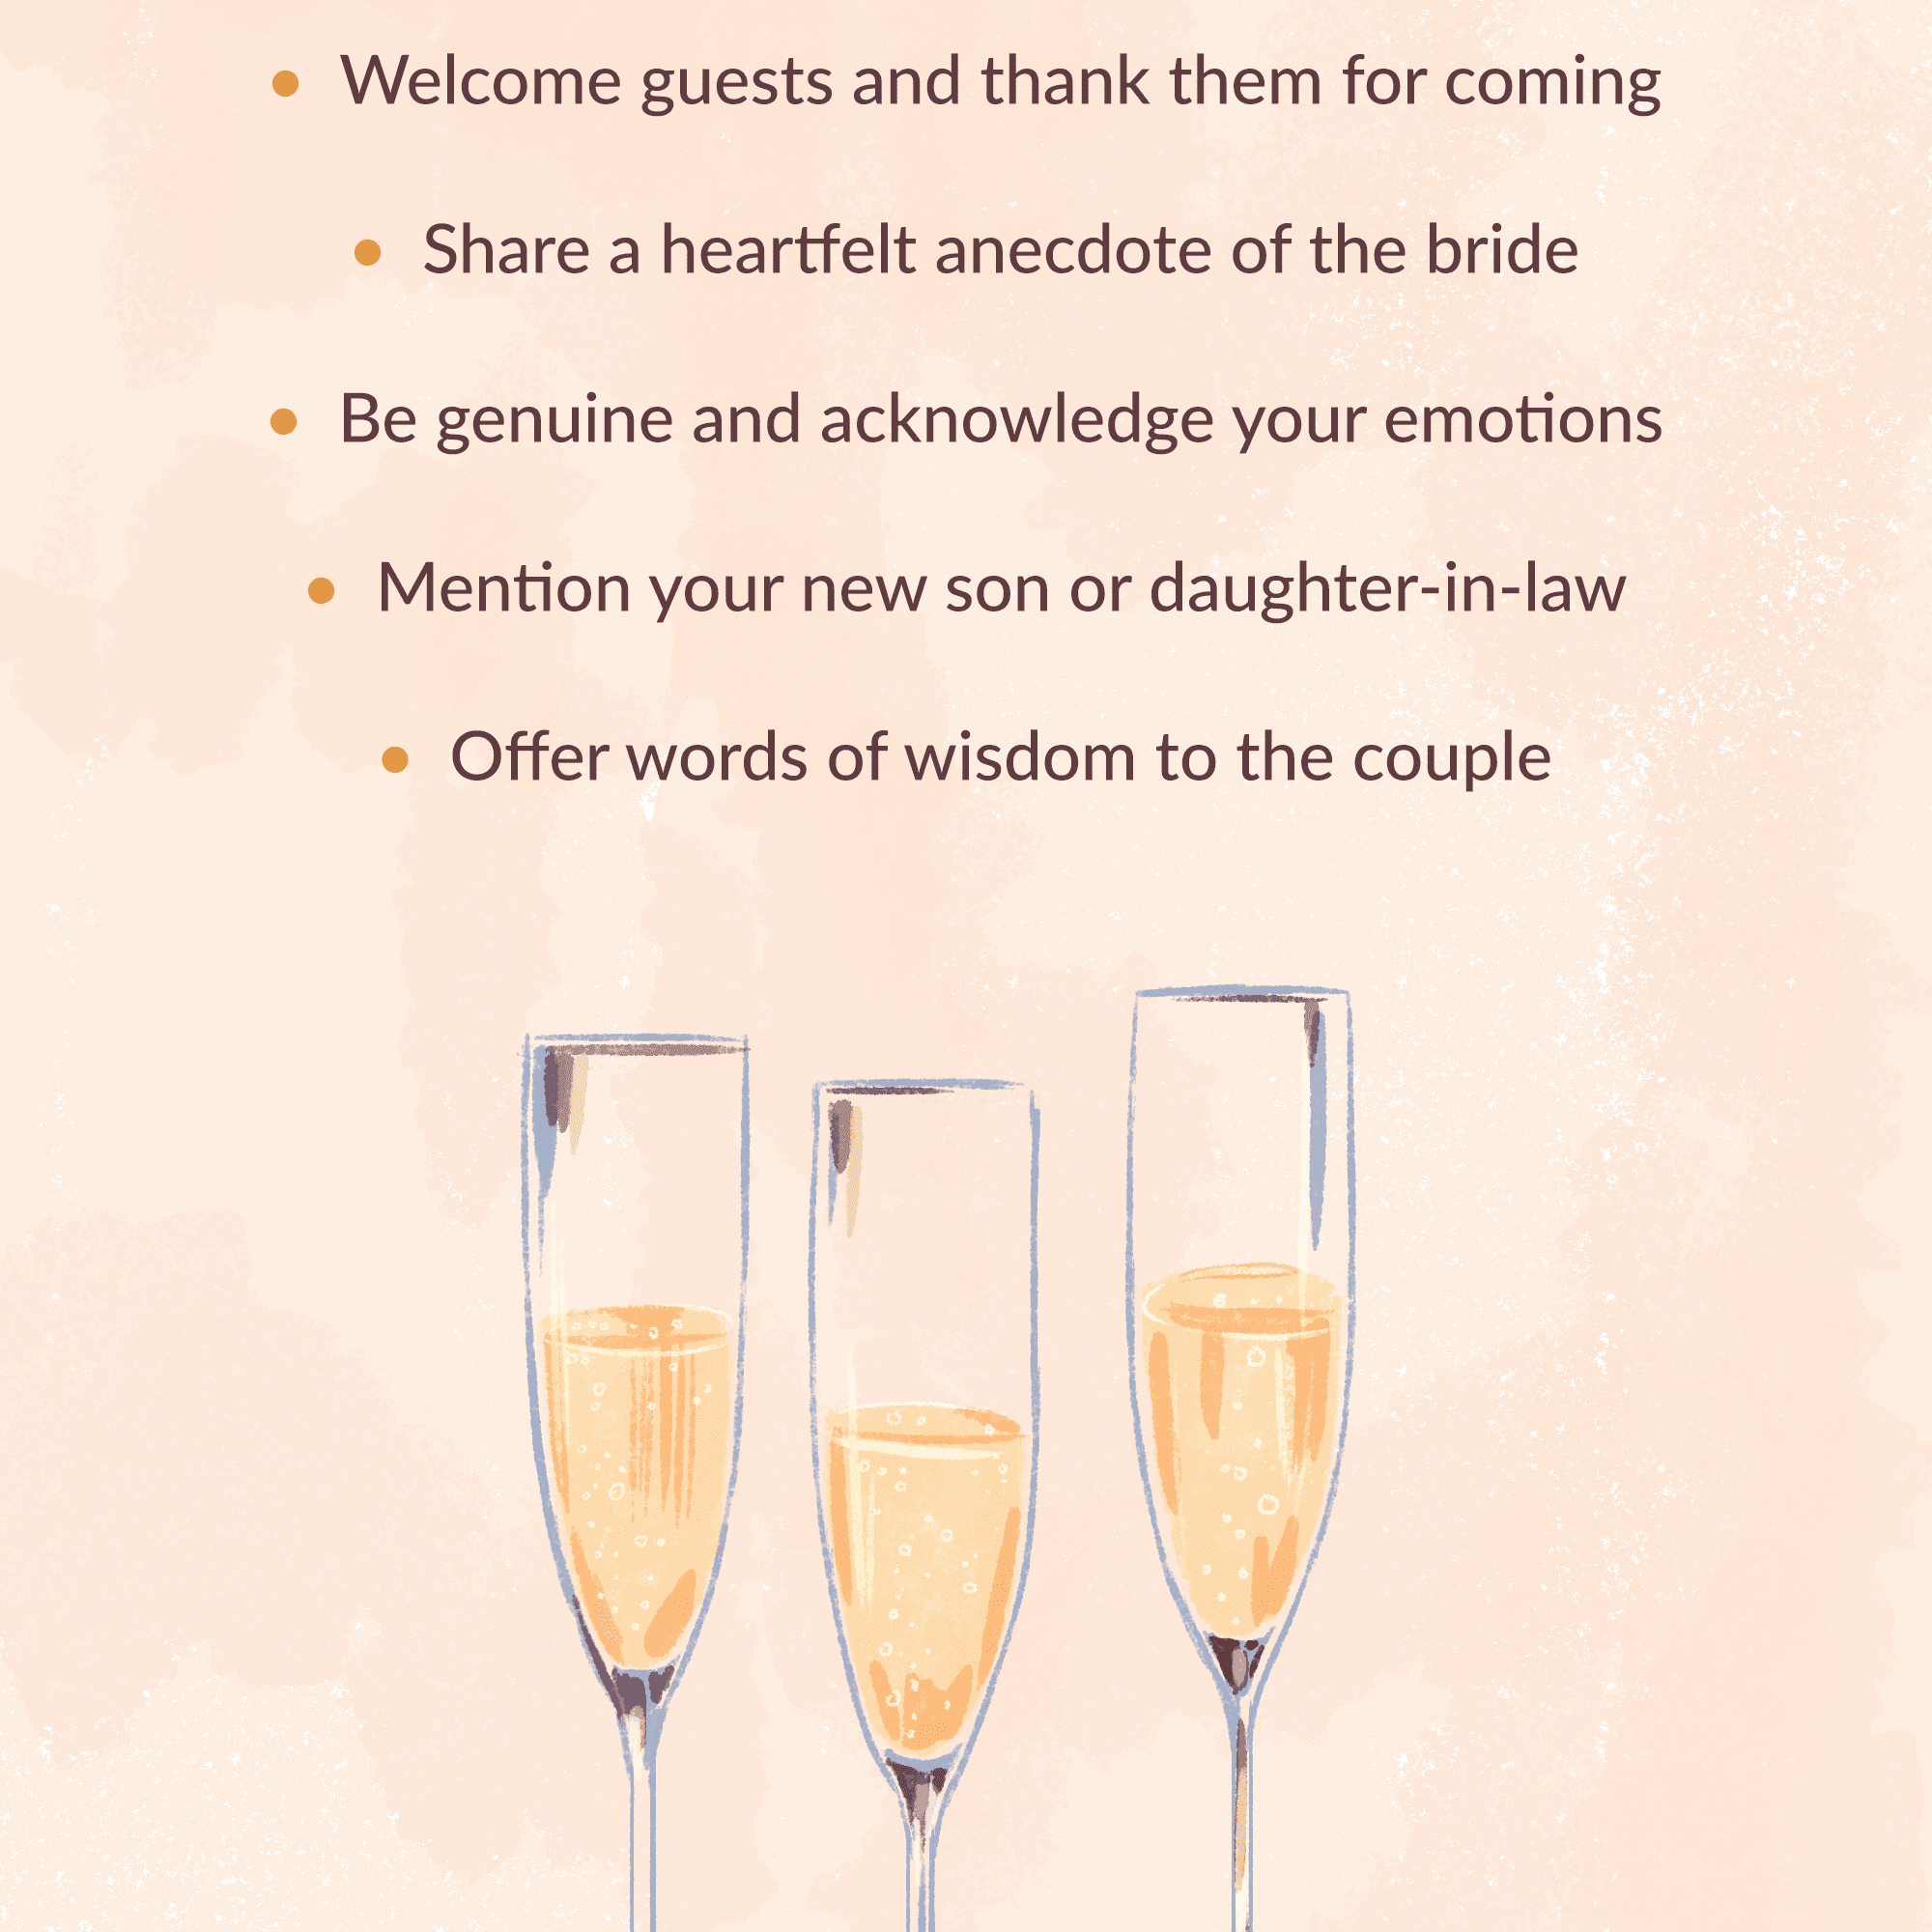 Father Of The Bride Wedding Toast Tips